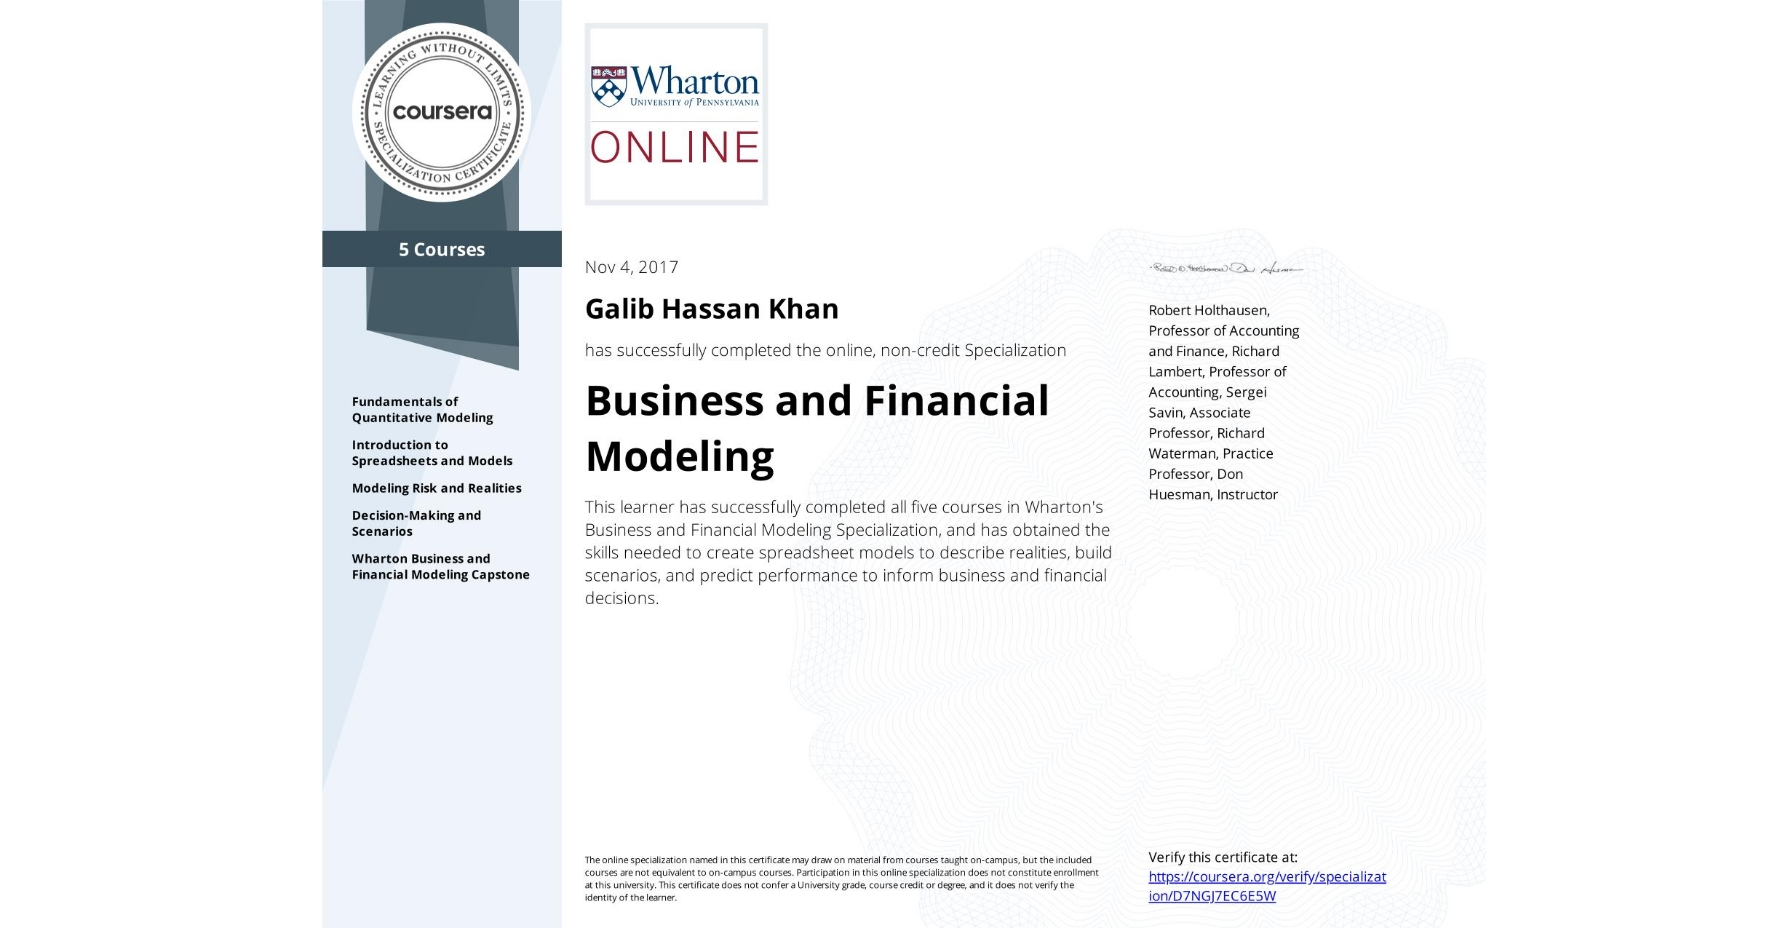 View certificate for Galib Hassan  Khan, Business and Financial Modeling, offered through Coursera. This learner has successfully completed all five courses in Wharton's Business and Financial Modeling Specialization, and has obtained the skills needed to create spreadsheet models to describe realities, build scenarios, and predict performance to inform business and financial decisions.